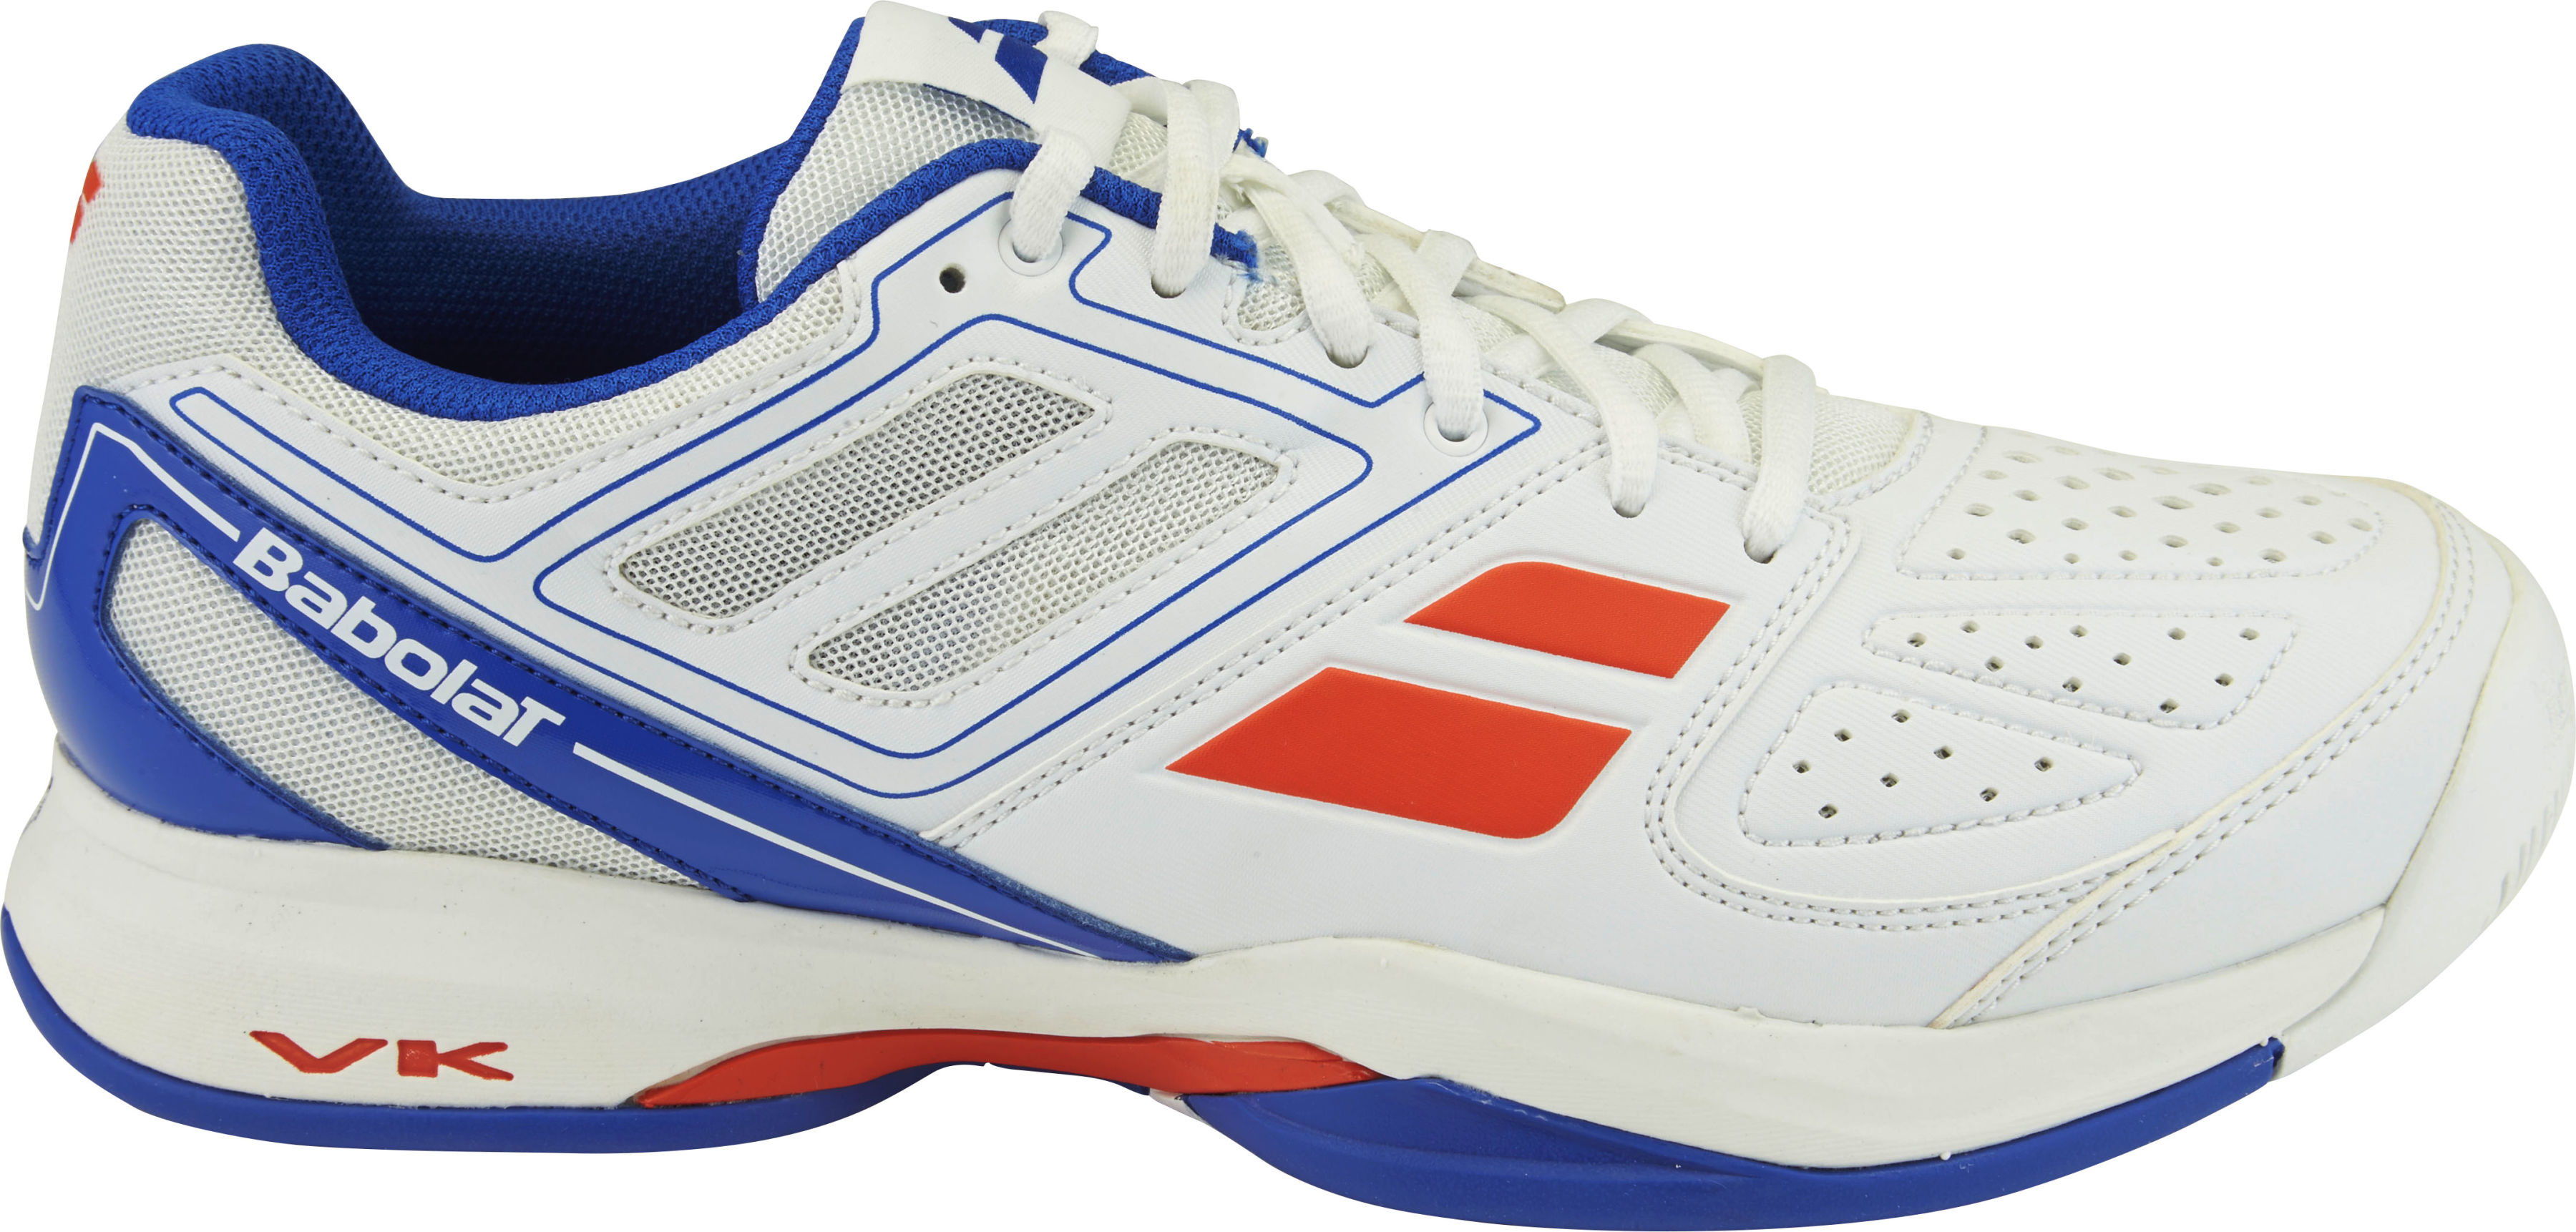 Babolat Pulsion All Court - white/blue